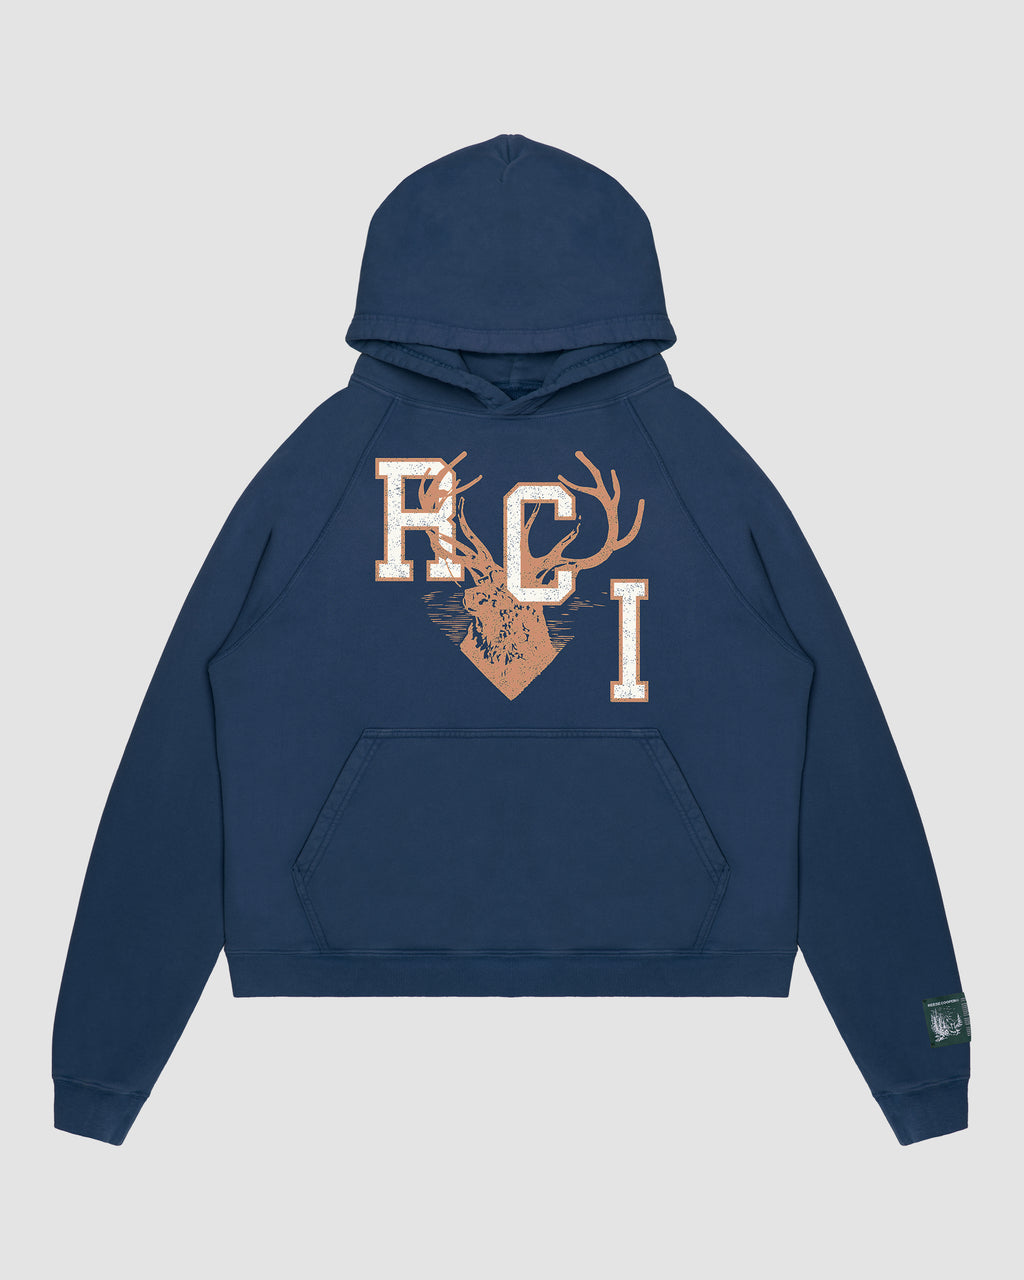 RCI Deer Logo Hooded Sweatshirt in Navy